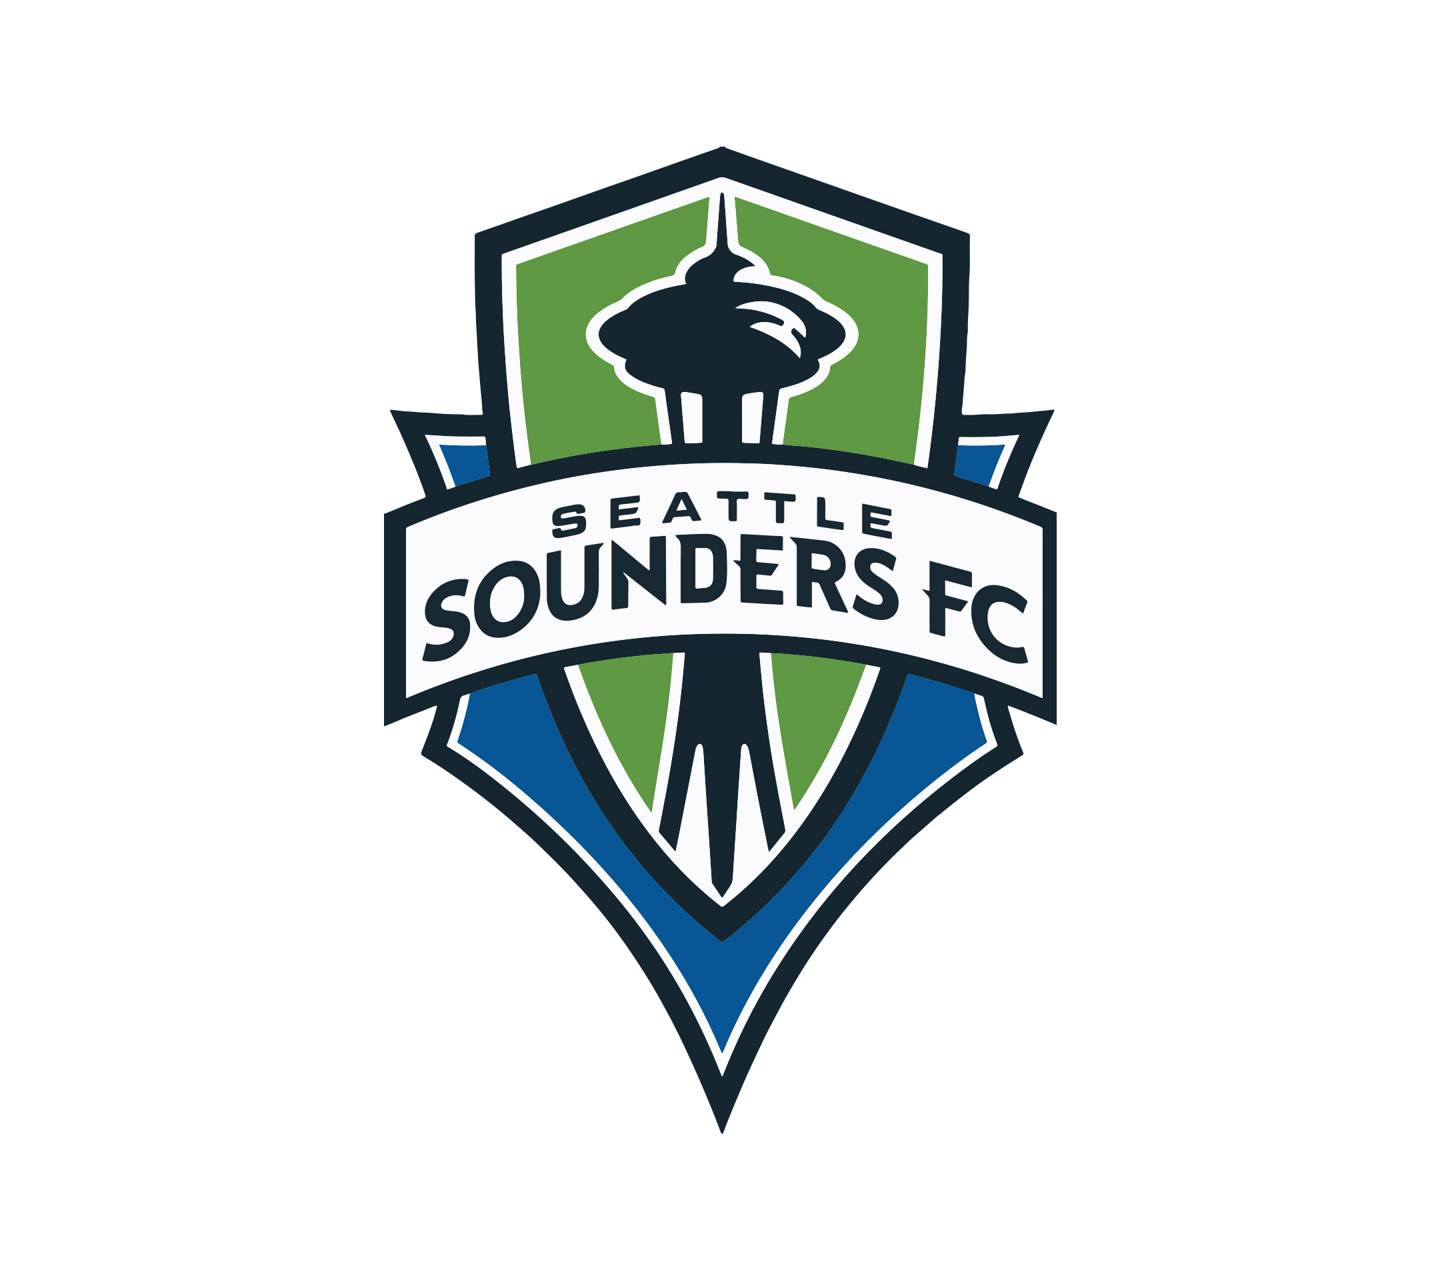 Seattle Sounders wallpapers by Tehkarma • ZEDGE™